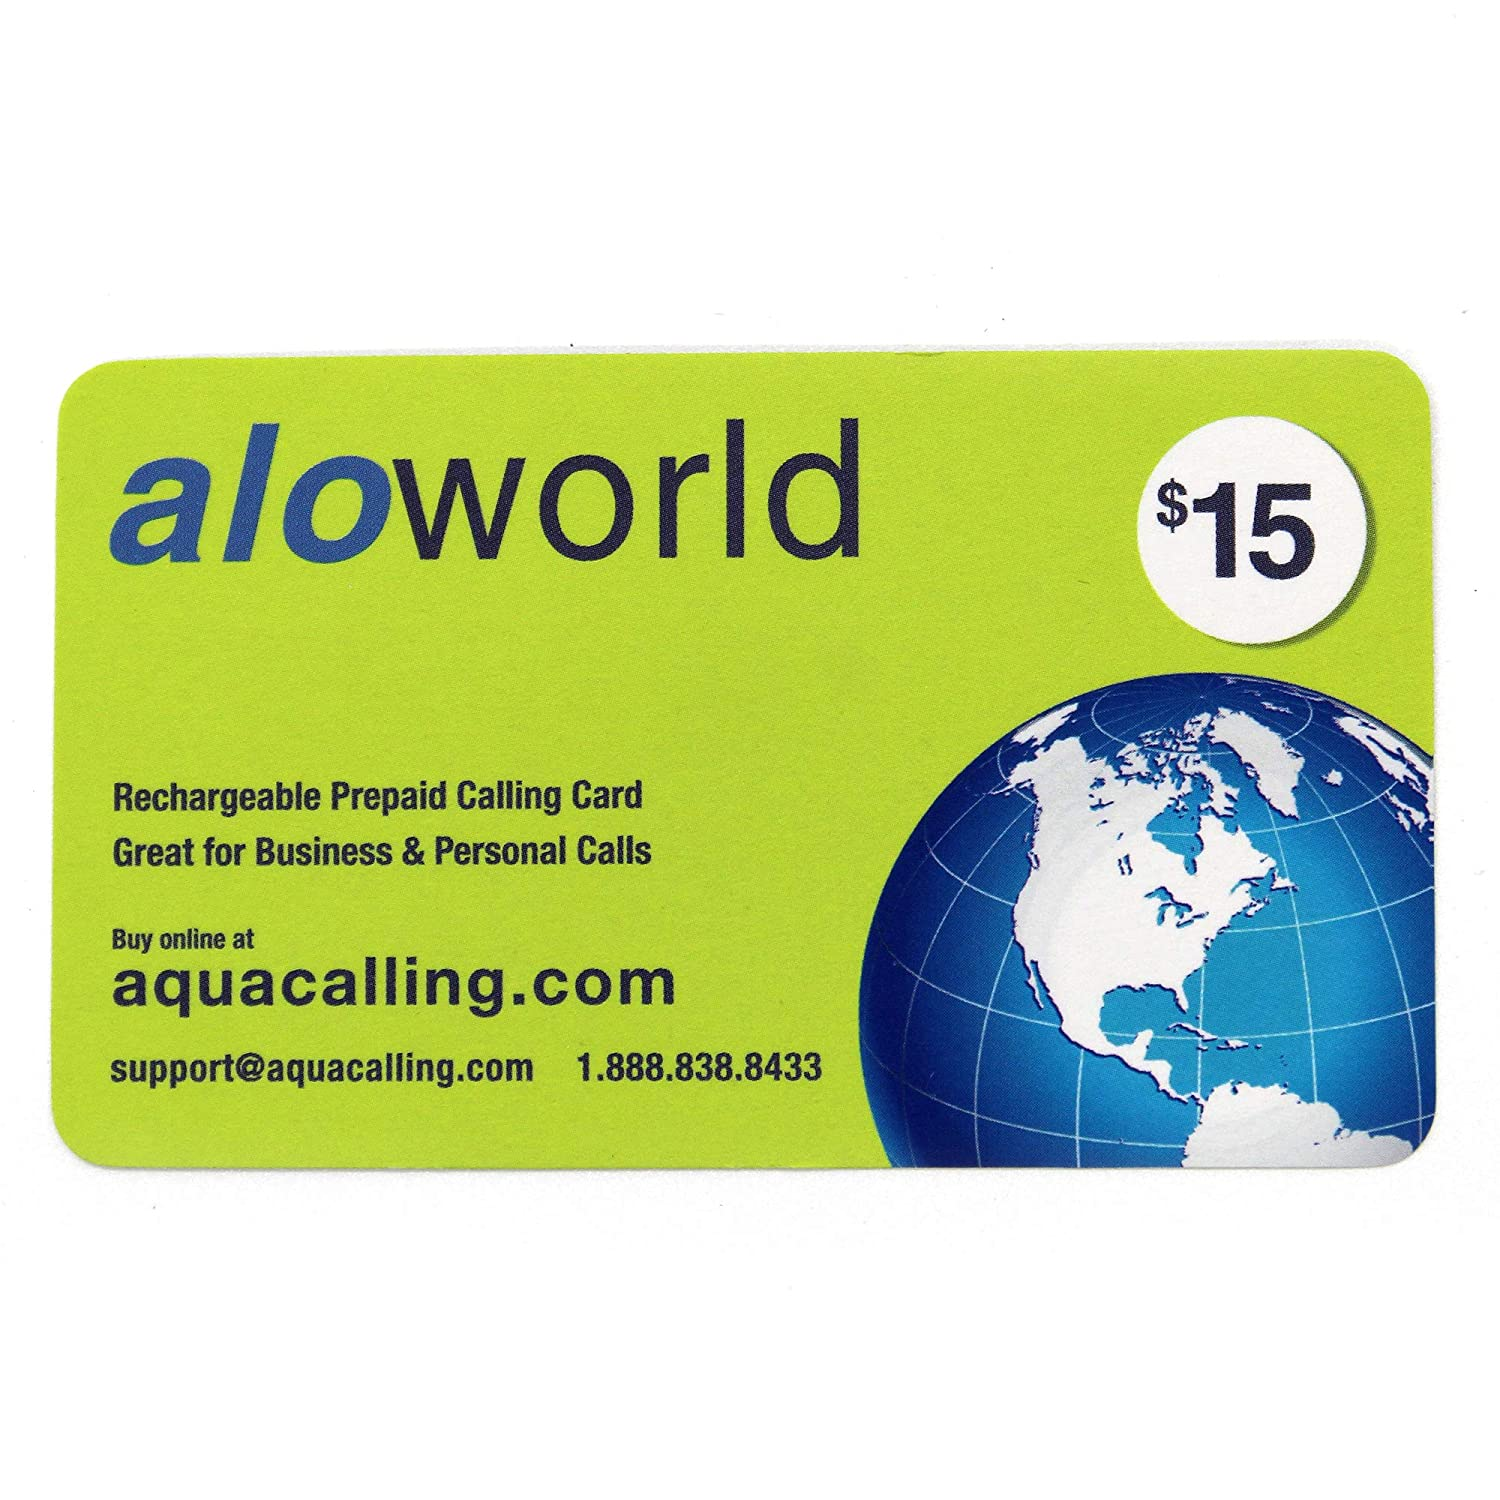 $15 Prepaid Phone Card for Domestic & International Calls - Calling Card Does not expire by Calling 1.888.838.8433 to Extend. No Pay Phone Fee by Using Toll Free 1.855.728.7433